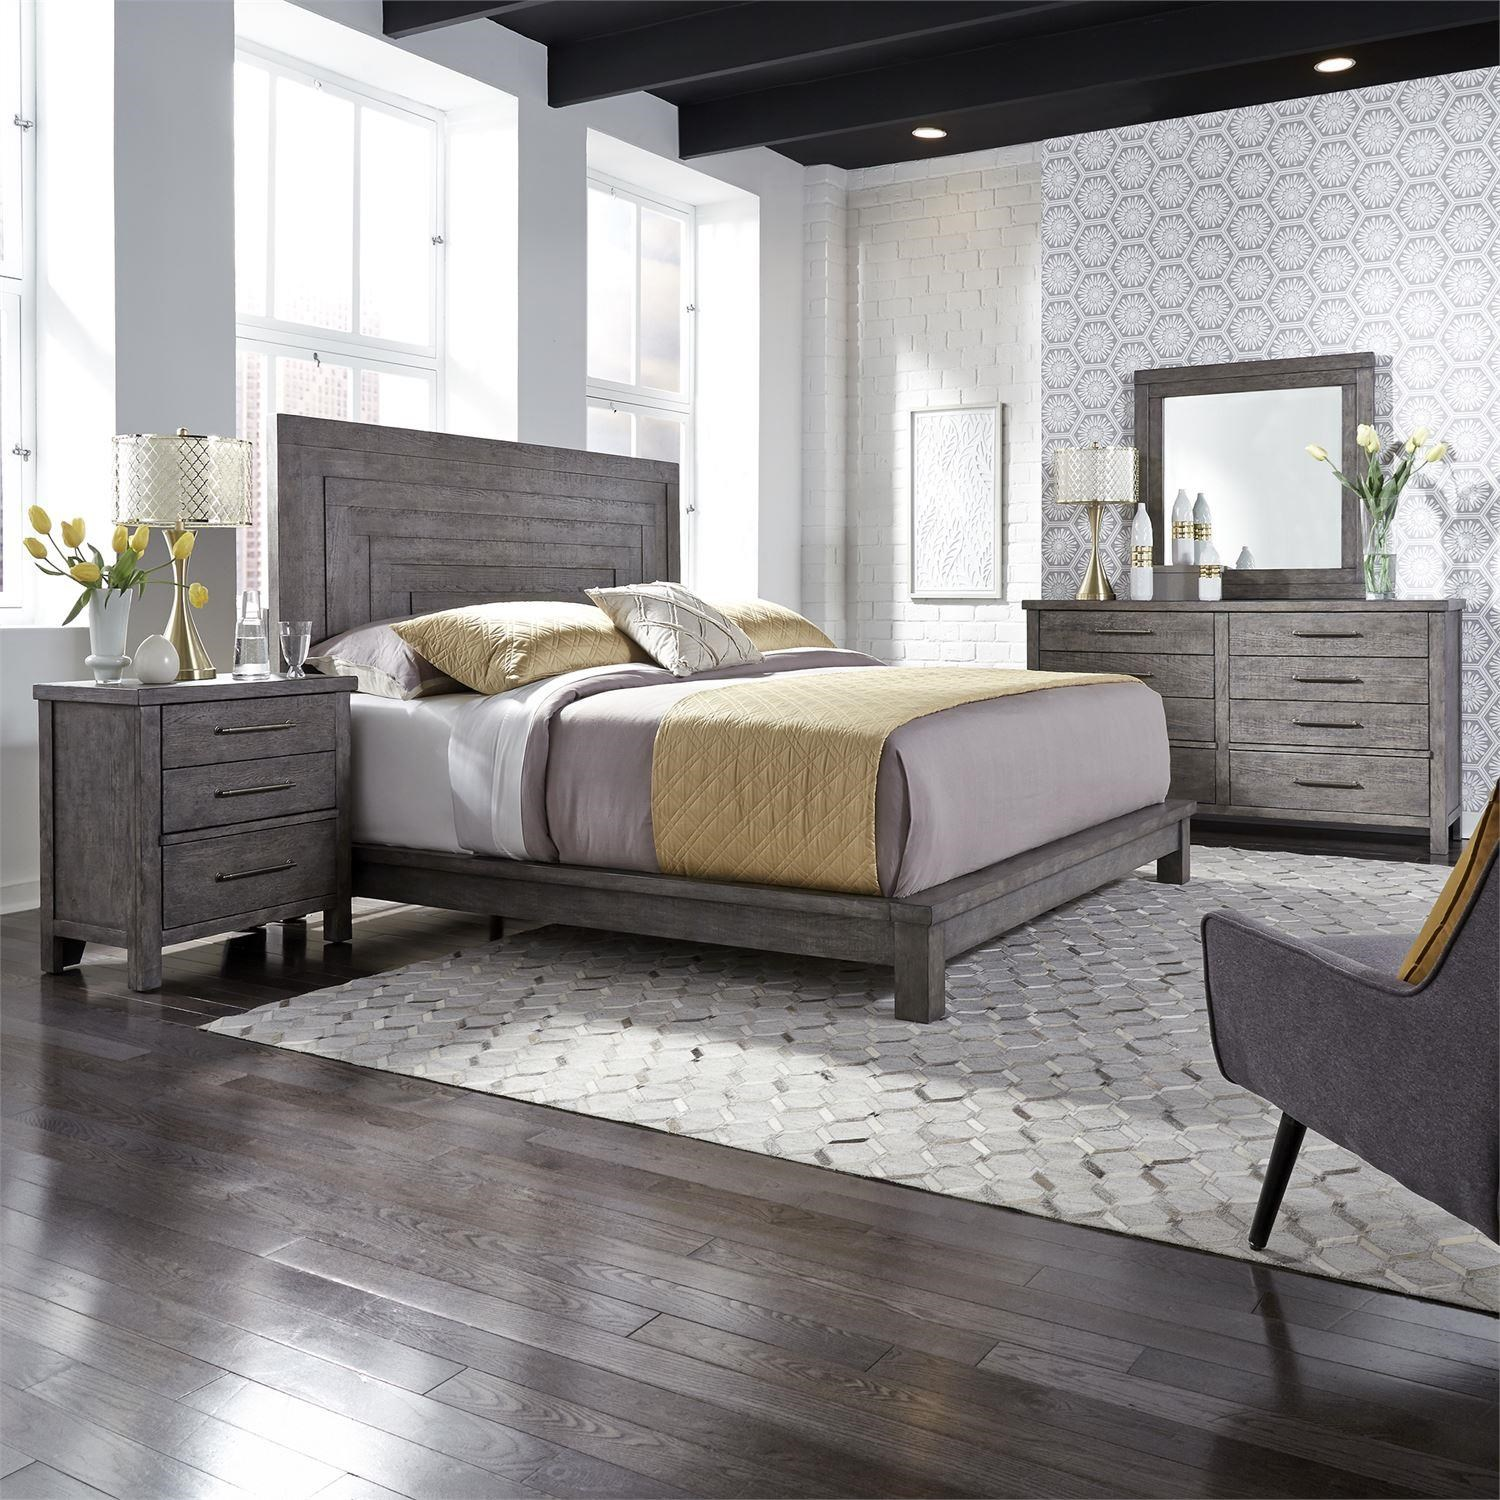 Picture of: Liberty Furniture Modern Farmhouse Contemporary King Platform Bed Darvin Furniture Platform Beds Low Profile Beds